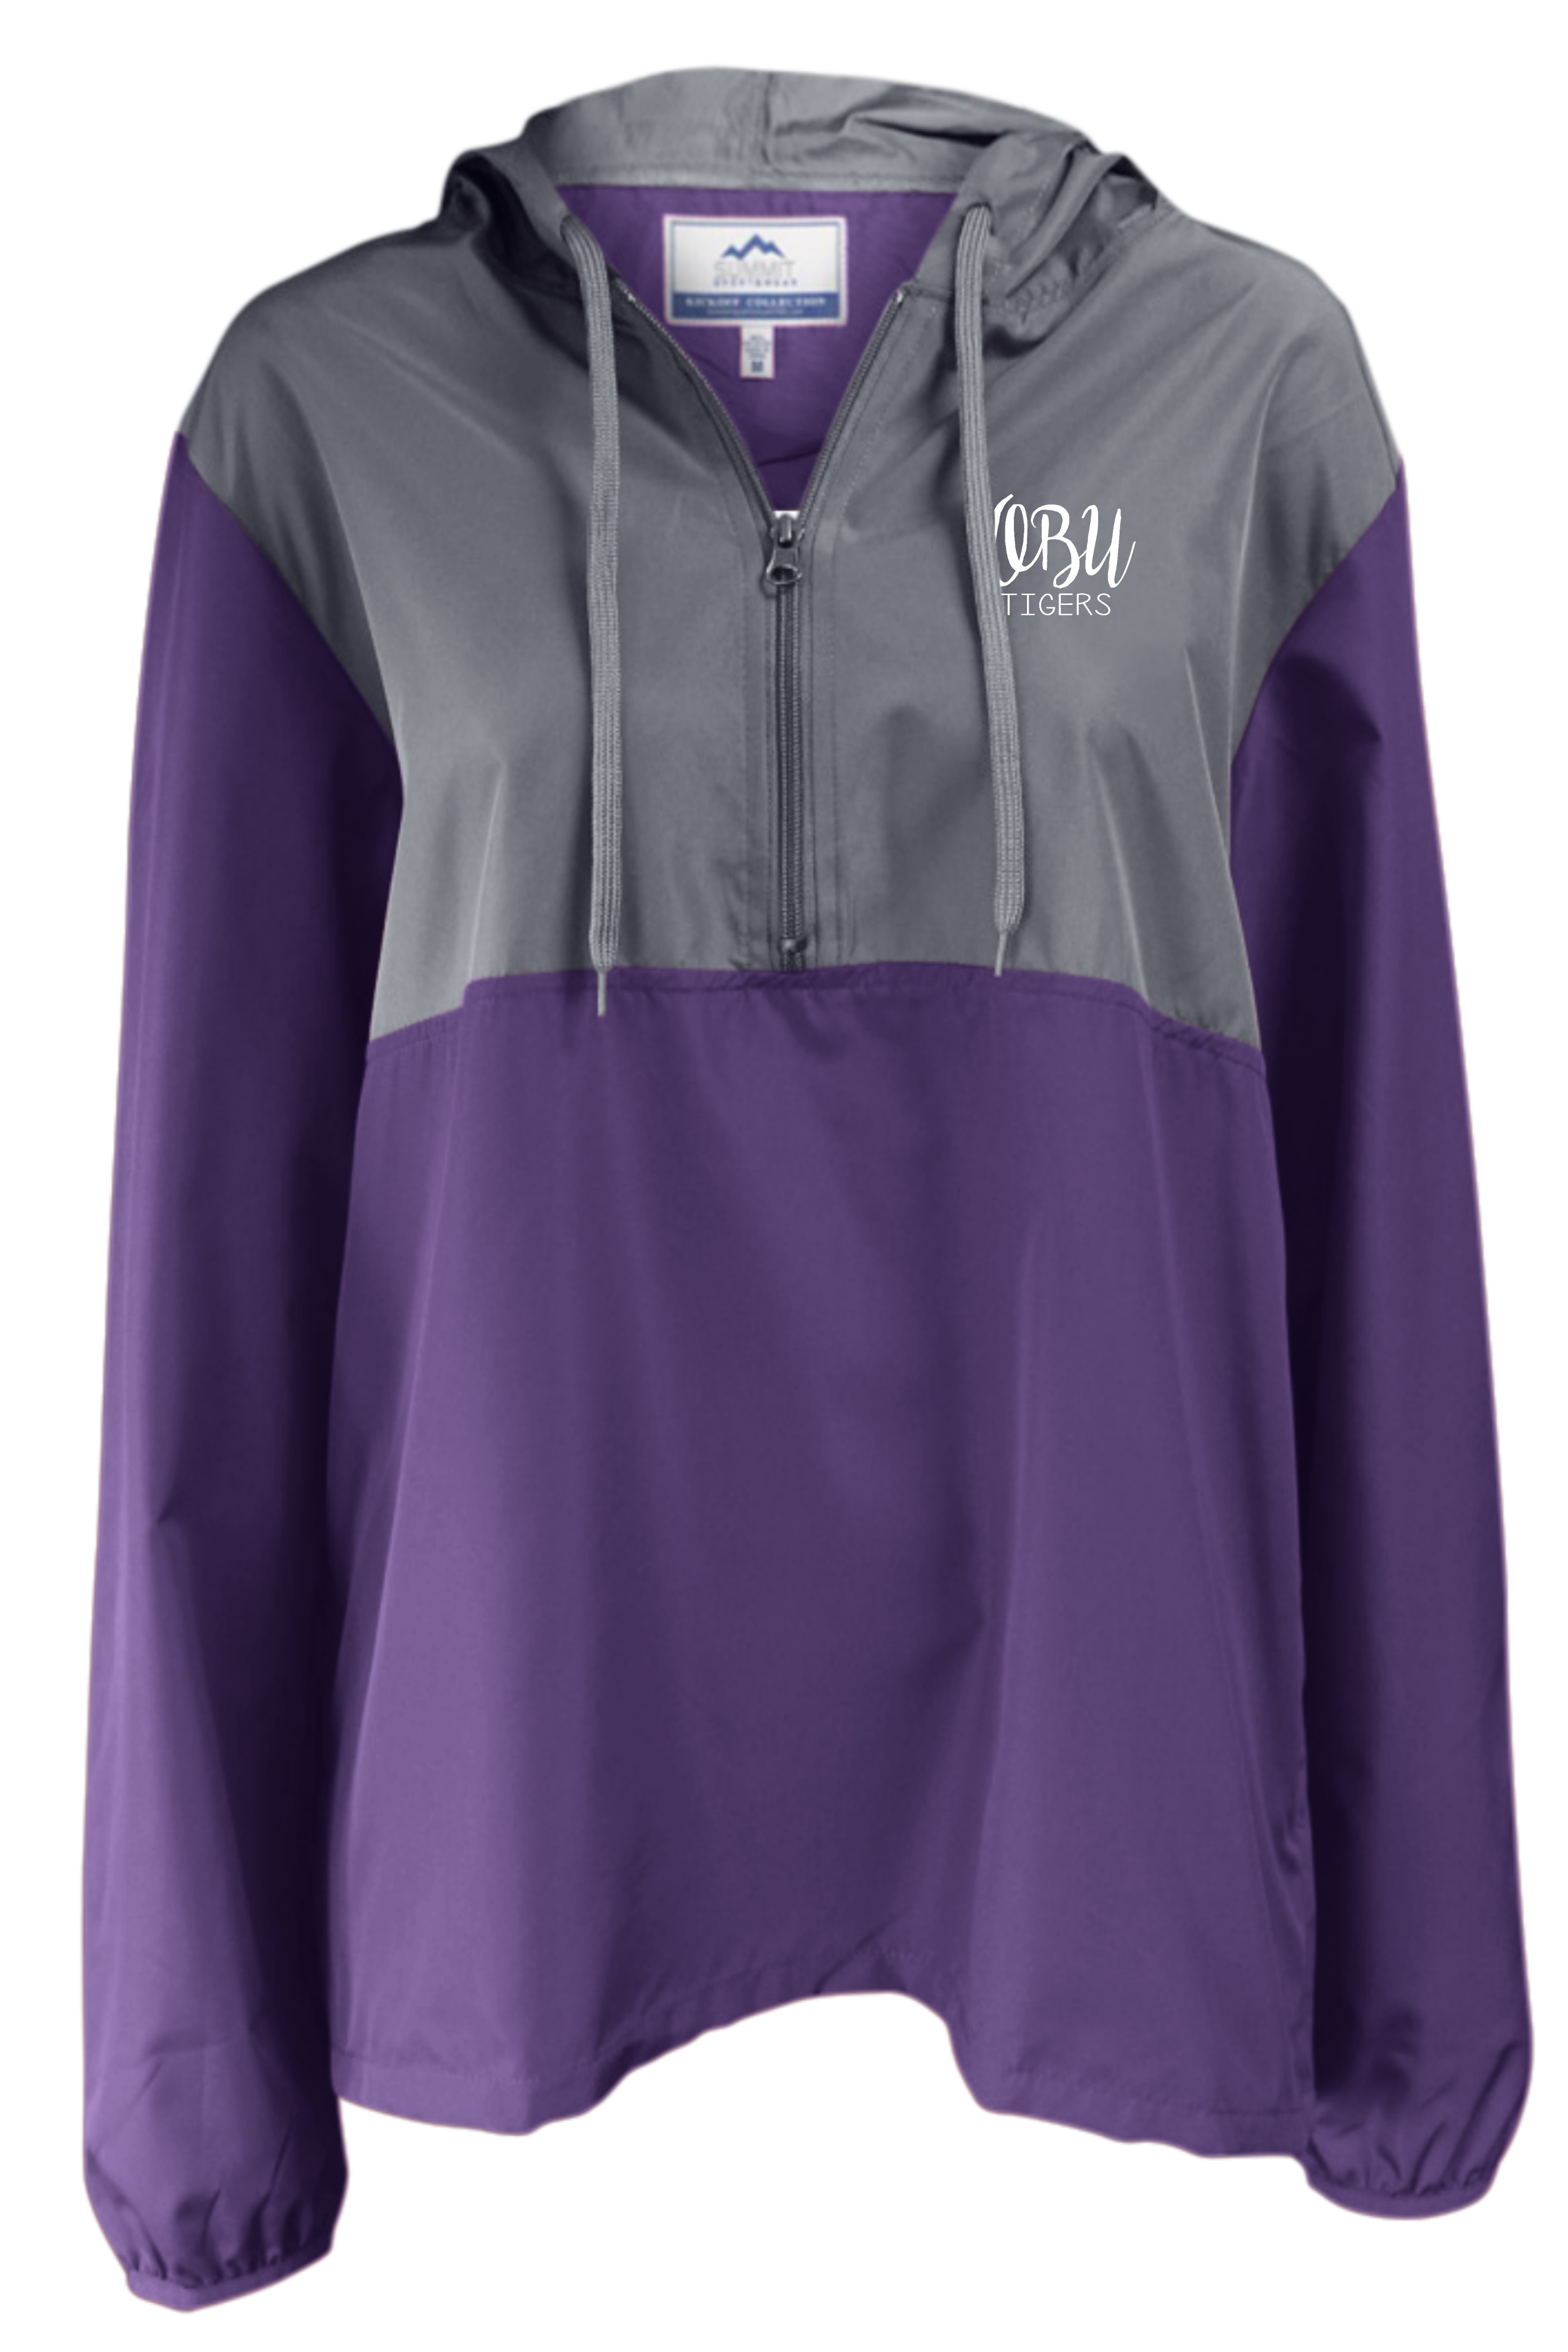 OBU TIGERS 1/2 ZIP WINDBREAKER